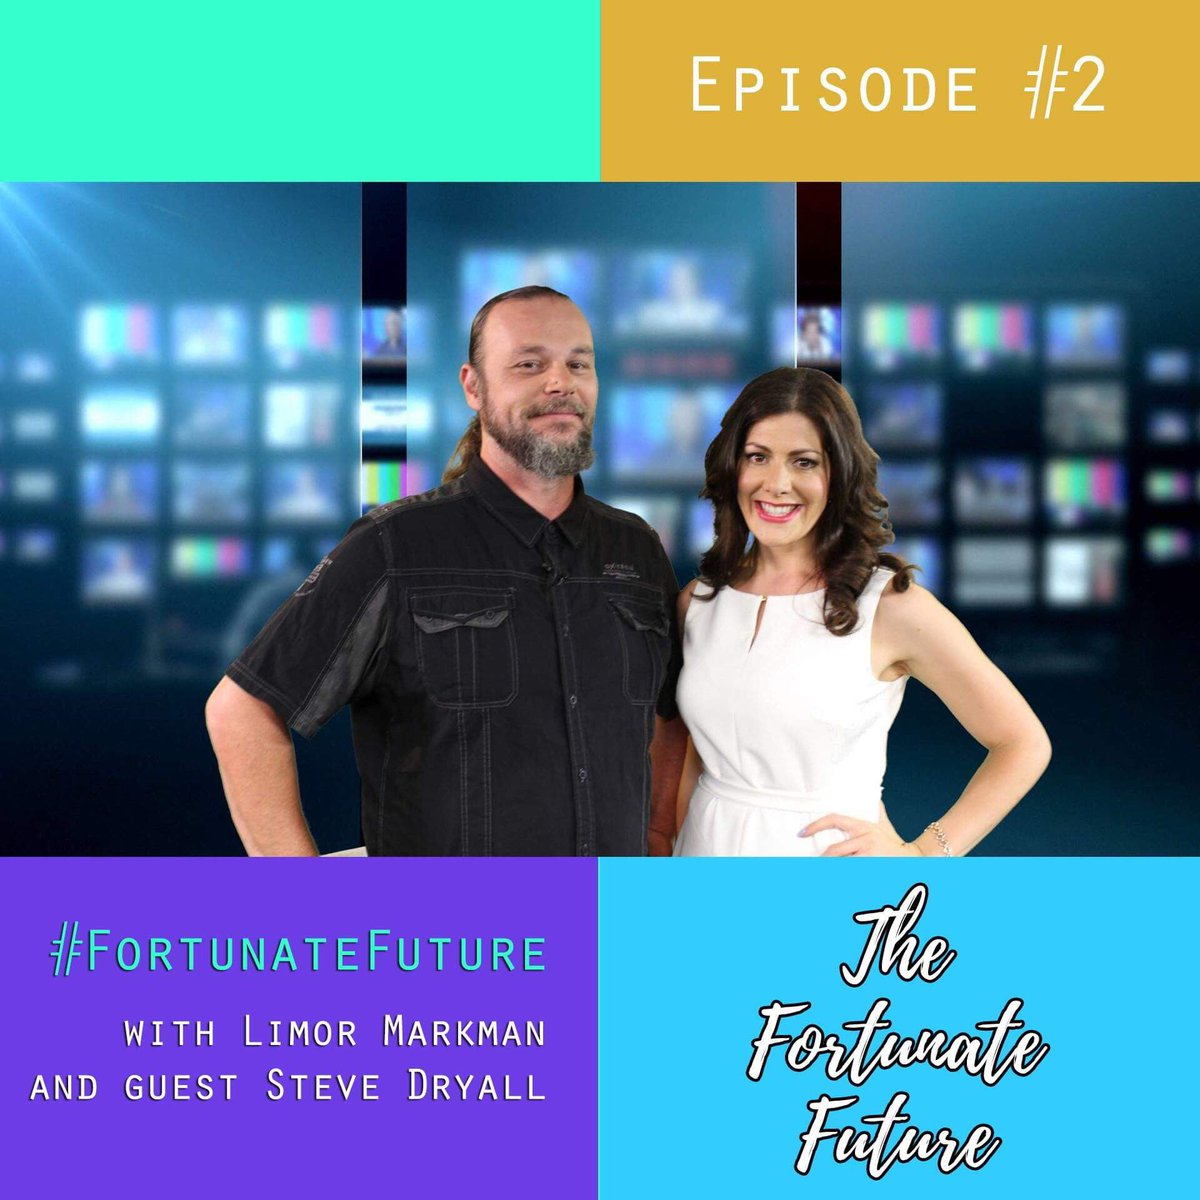 """The #FortunateFuture welcomes #digitalmoney strategist @SDryall to talk about, """"How to determine if a #crypto is viable or good"""". Steve is a founding director of @TeslaUnite.  Visit NTU @ https://bit.ly/2zDIPNn  #cryptocurrency #blockchain #nikopowered #fintech #decentralized"""